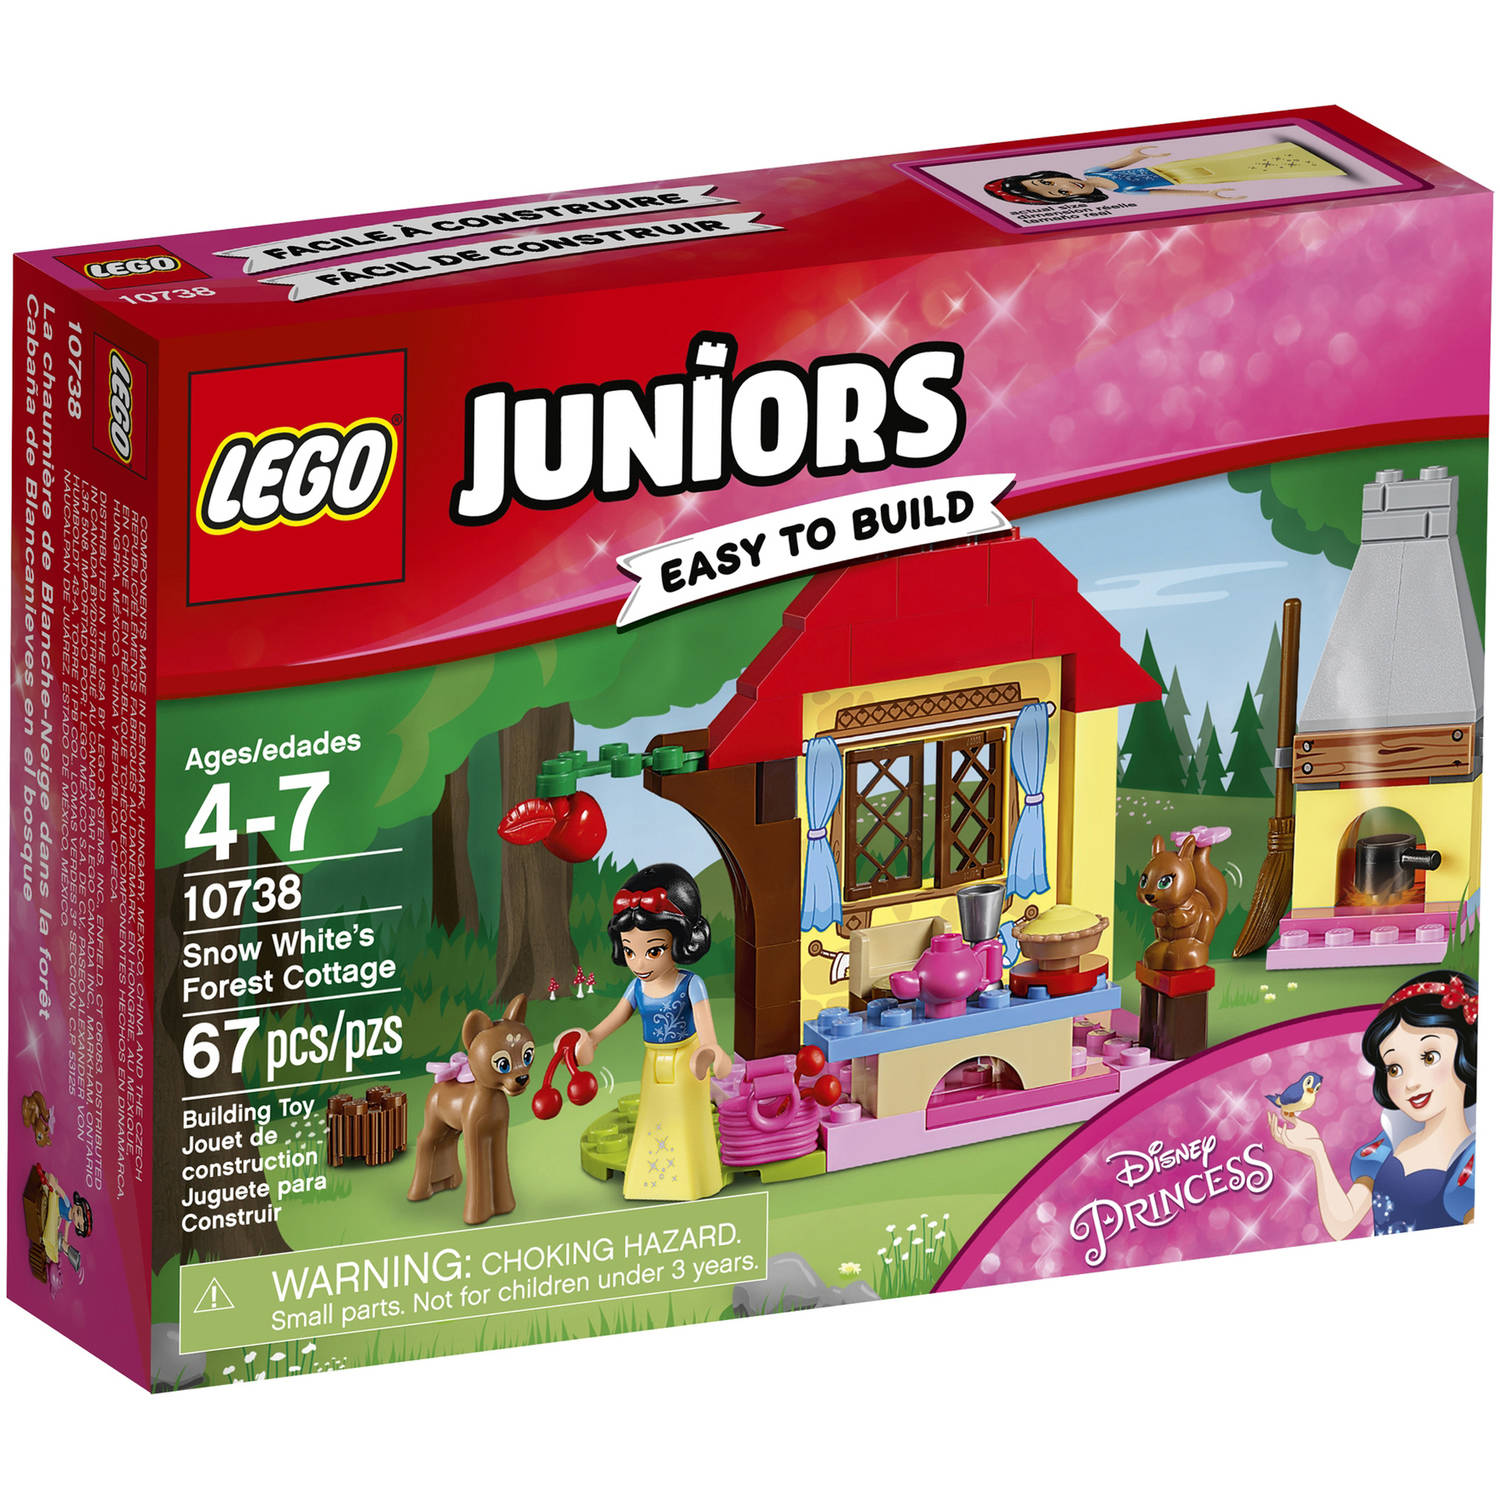 LEGO Juniors Snow White's Forest Cottage 10738